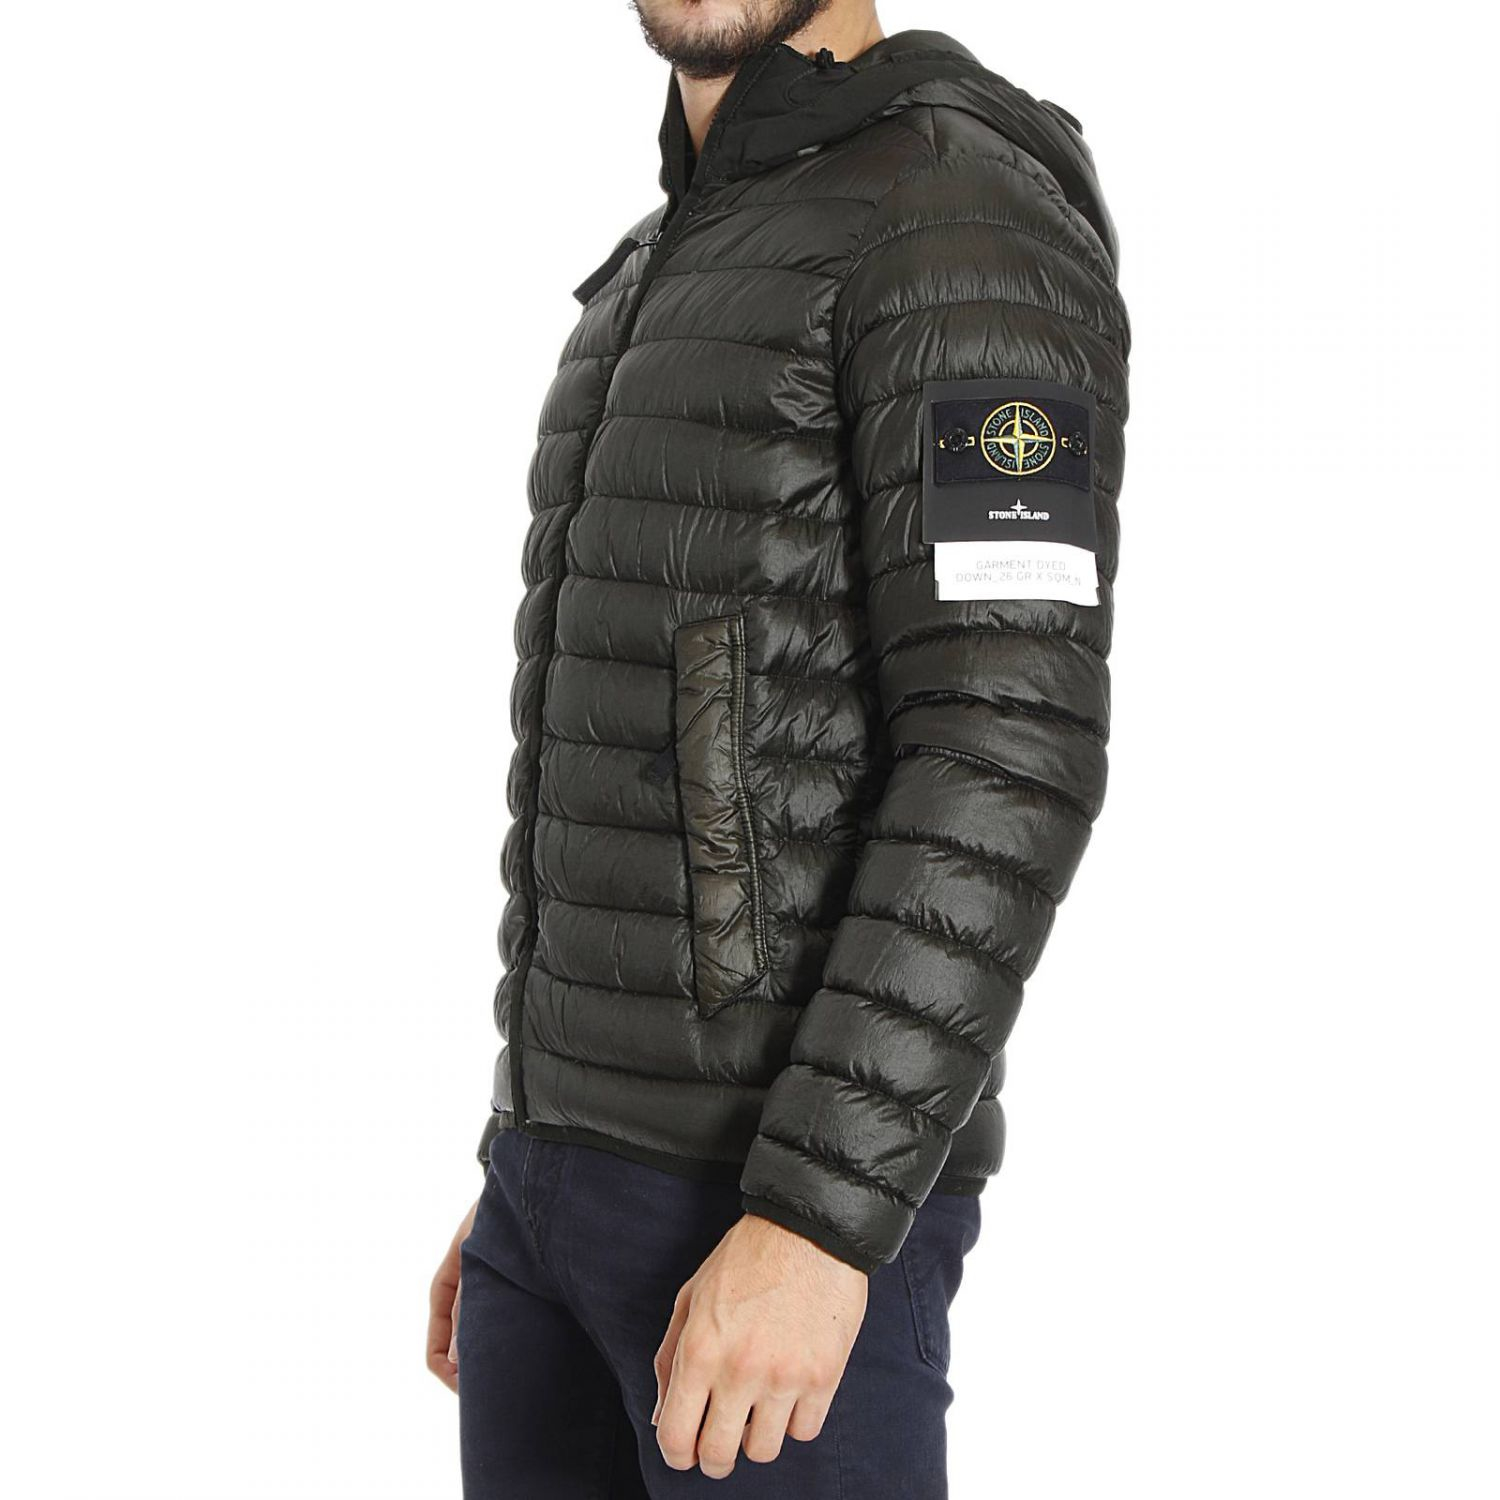 stone island down jacket in green for men lyst. Black Bedroom Furniture Sets. Home Design Ideas